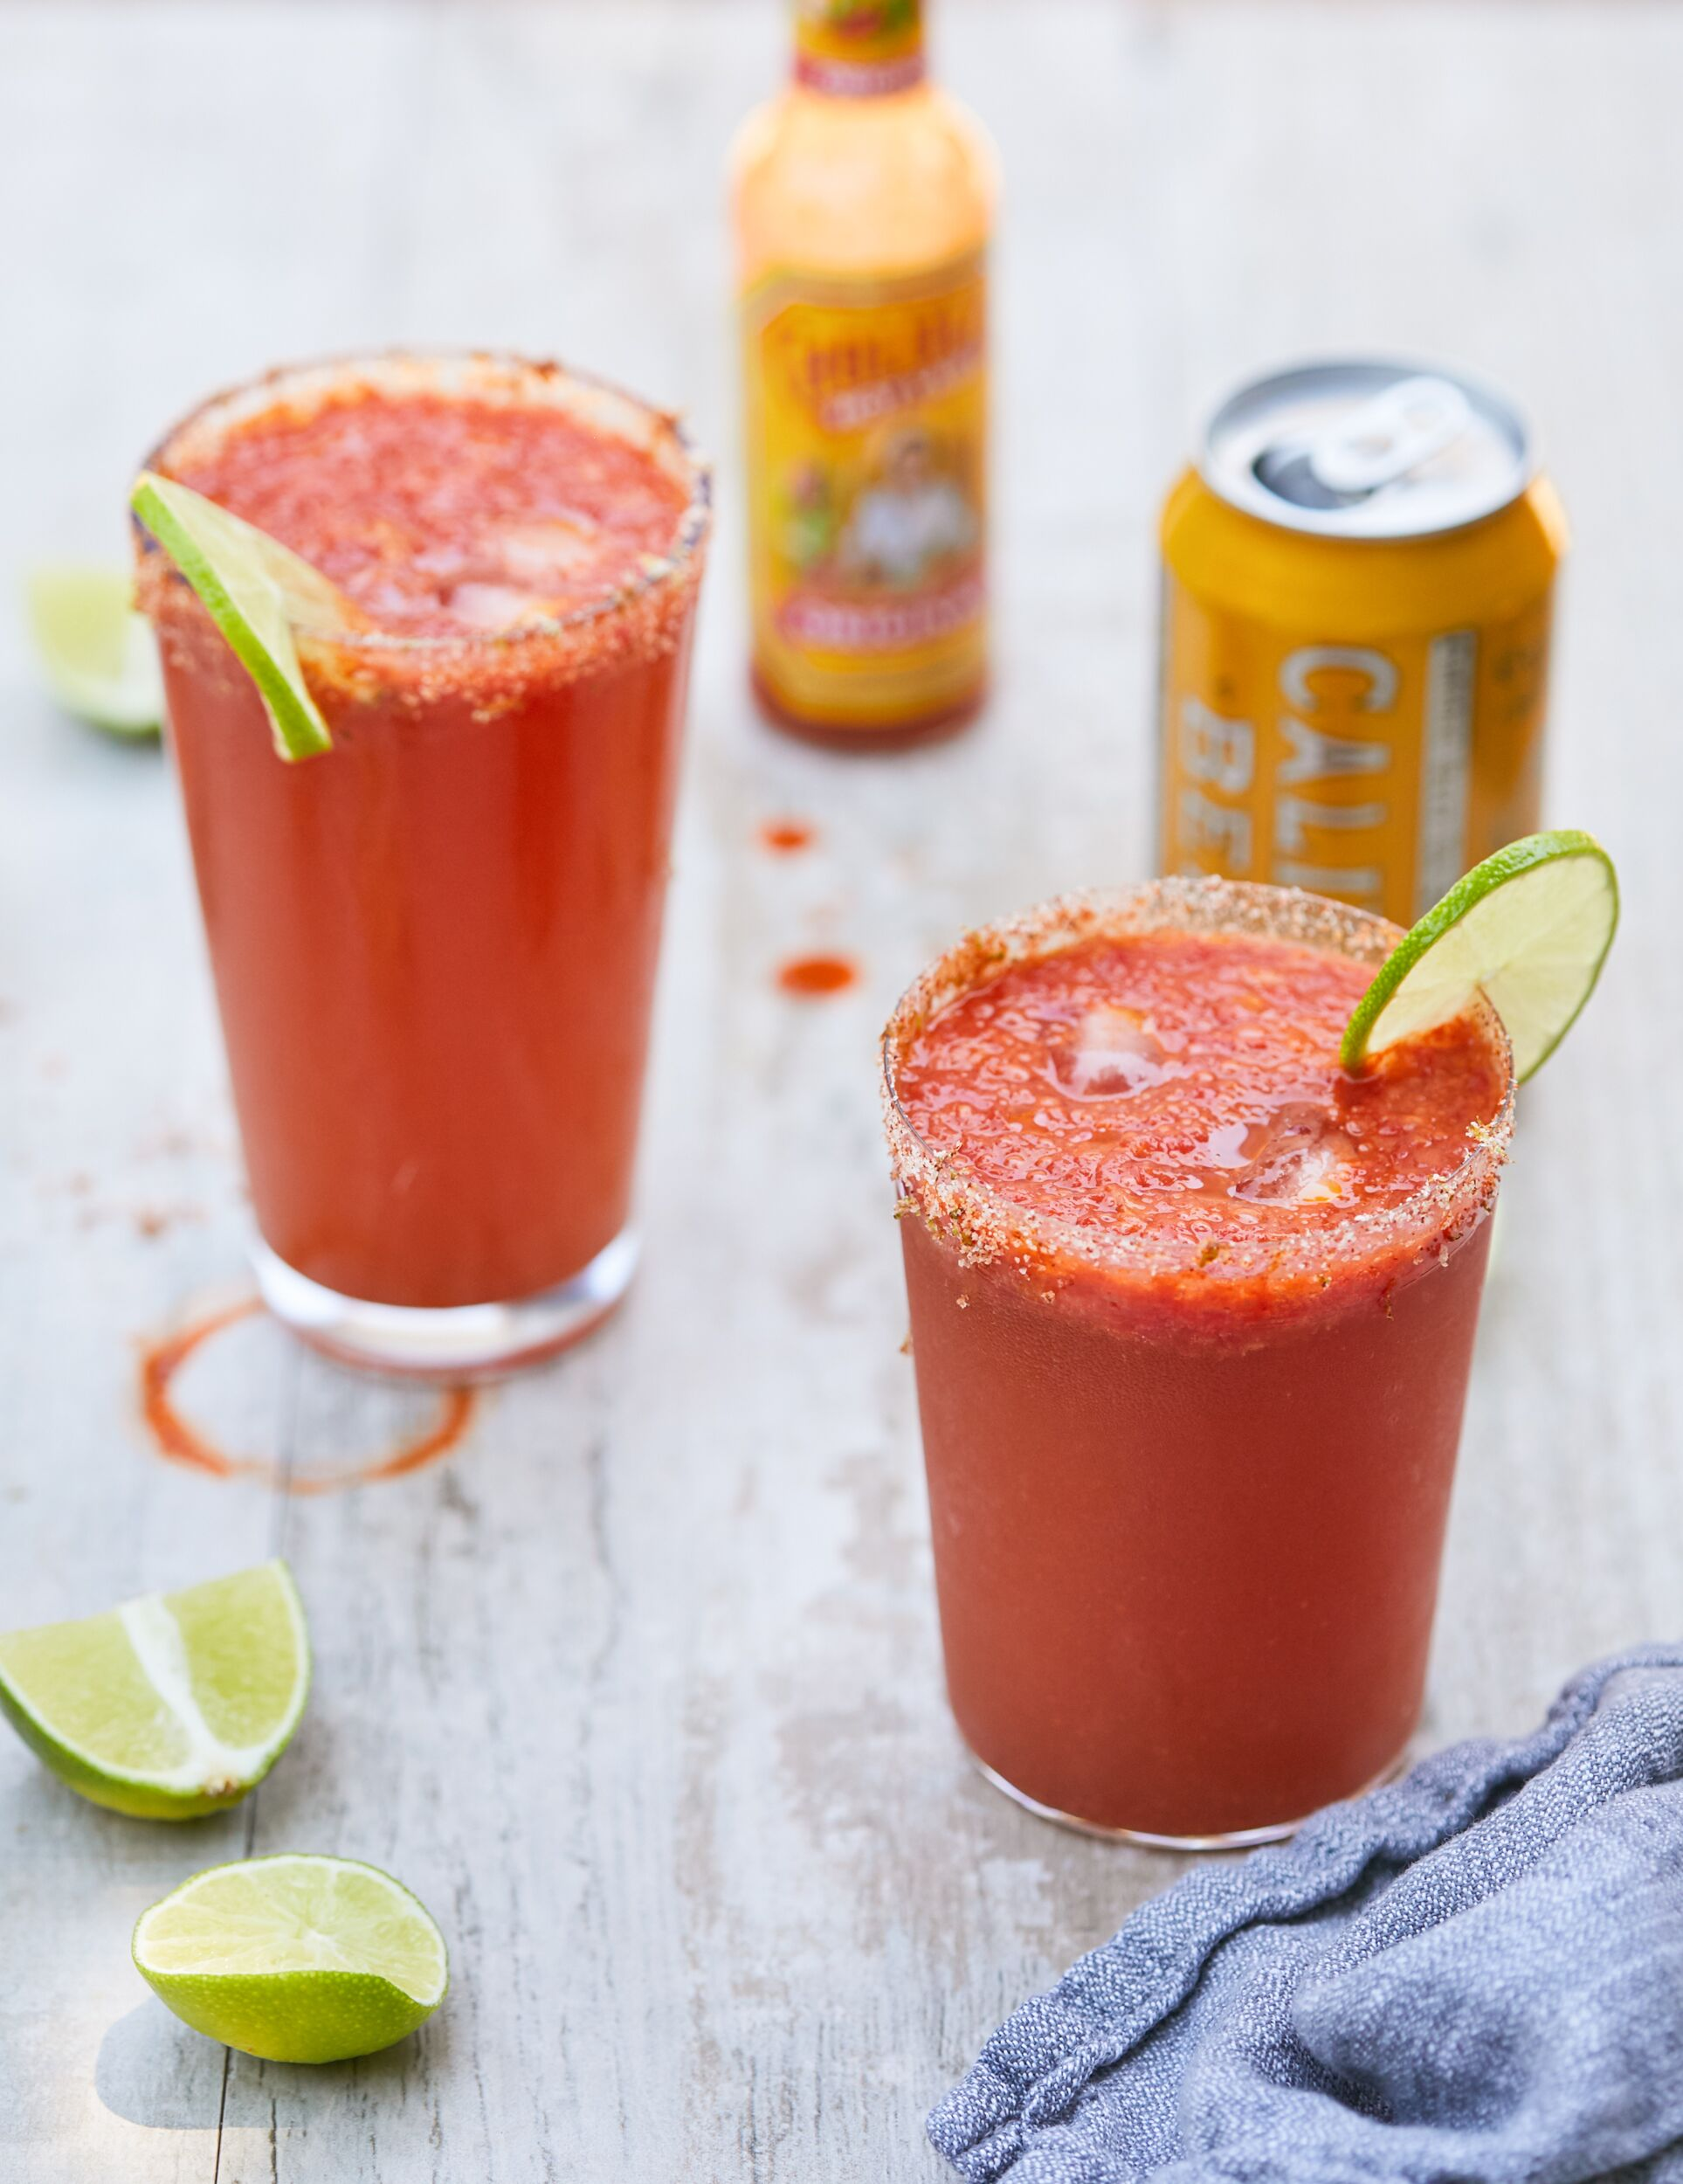 Then try the CBD Michelada!